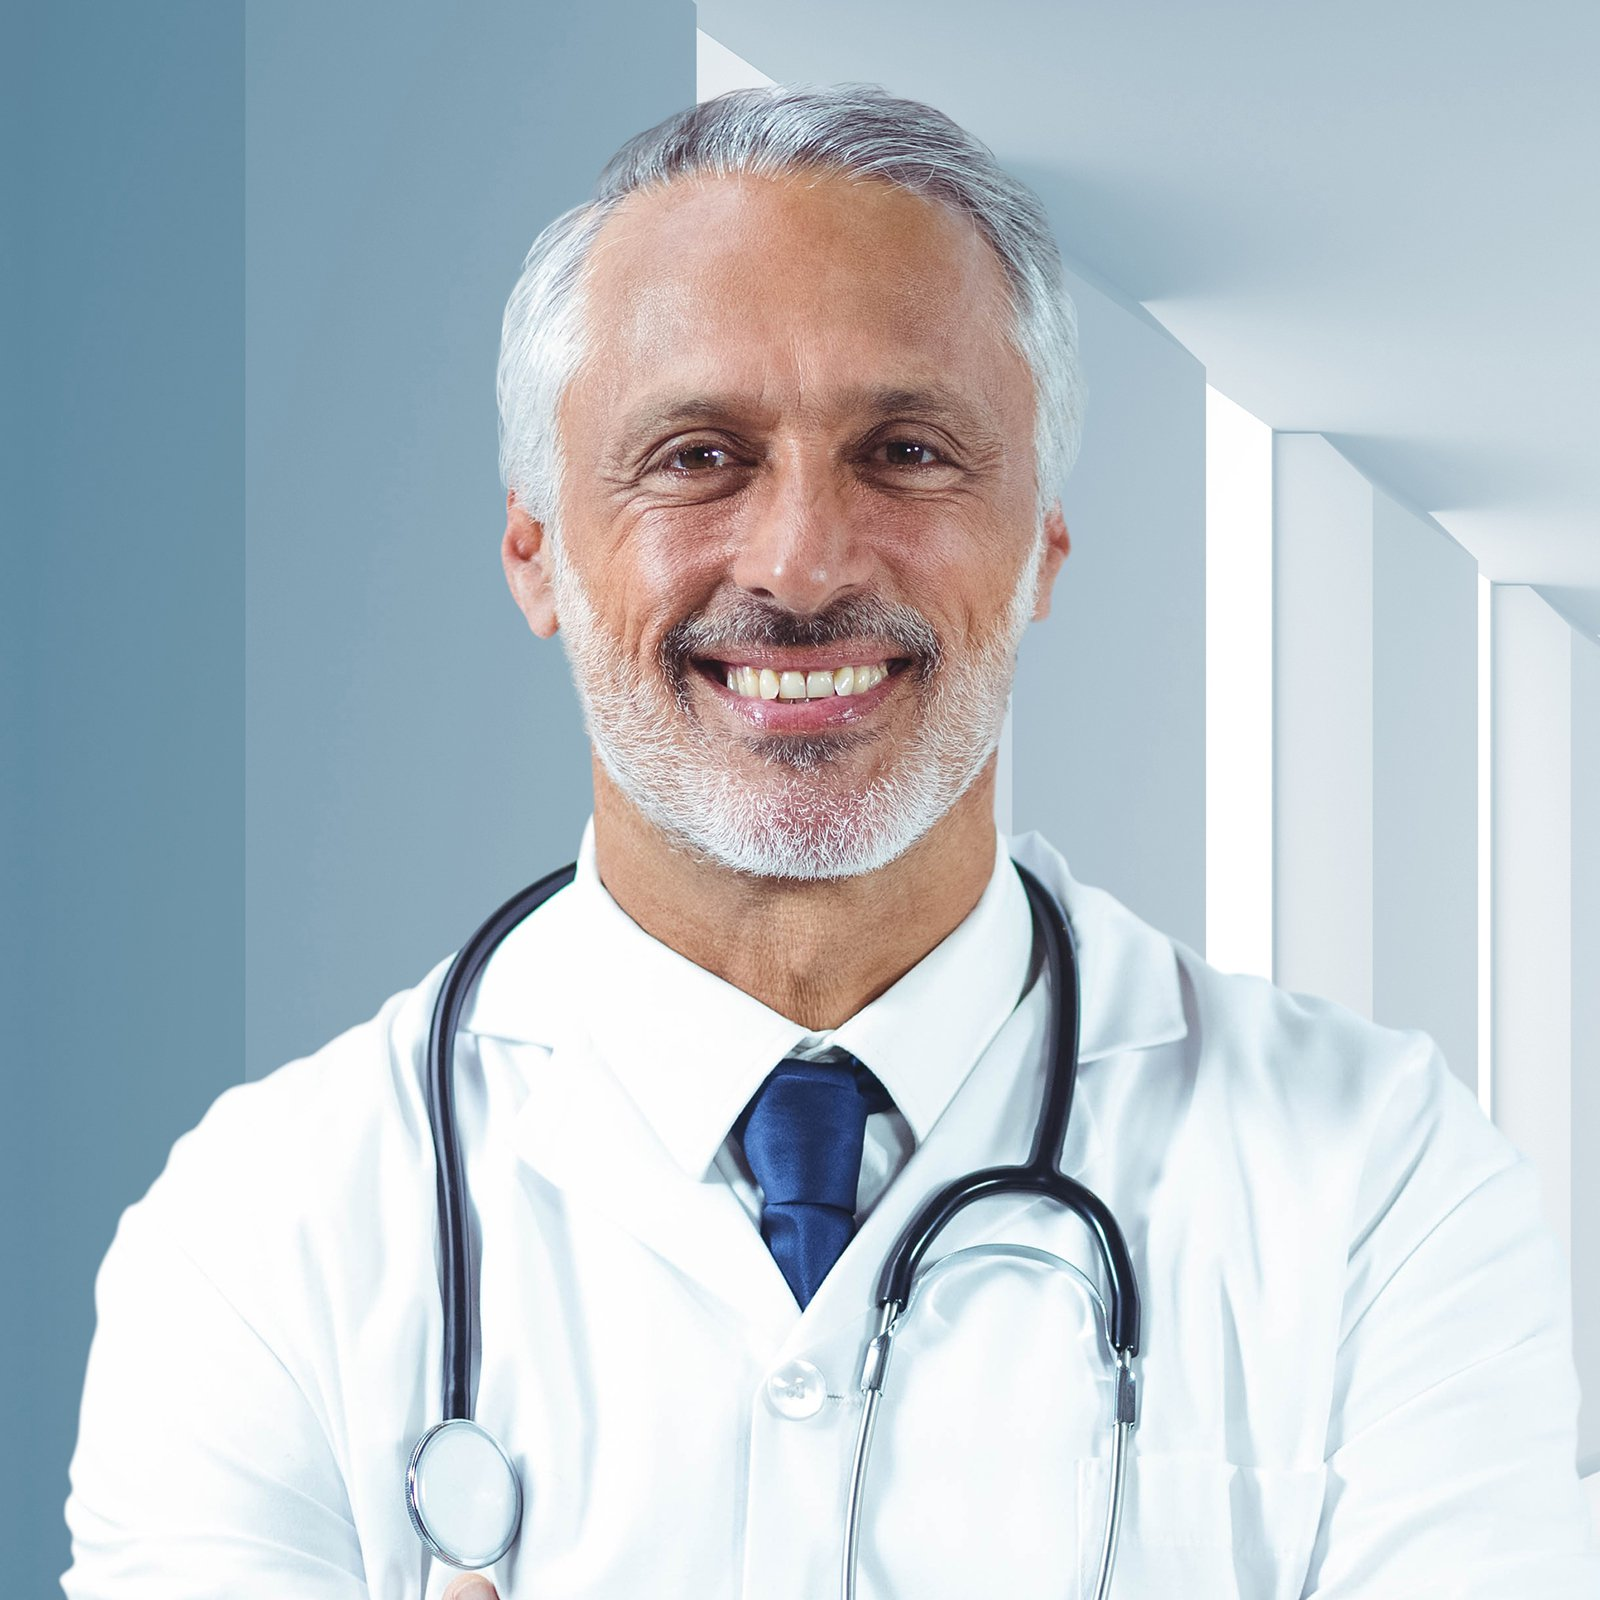 Male doctor standing with arms crossed in corrirdor